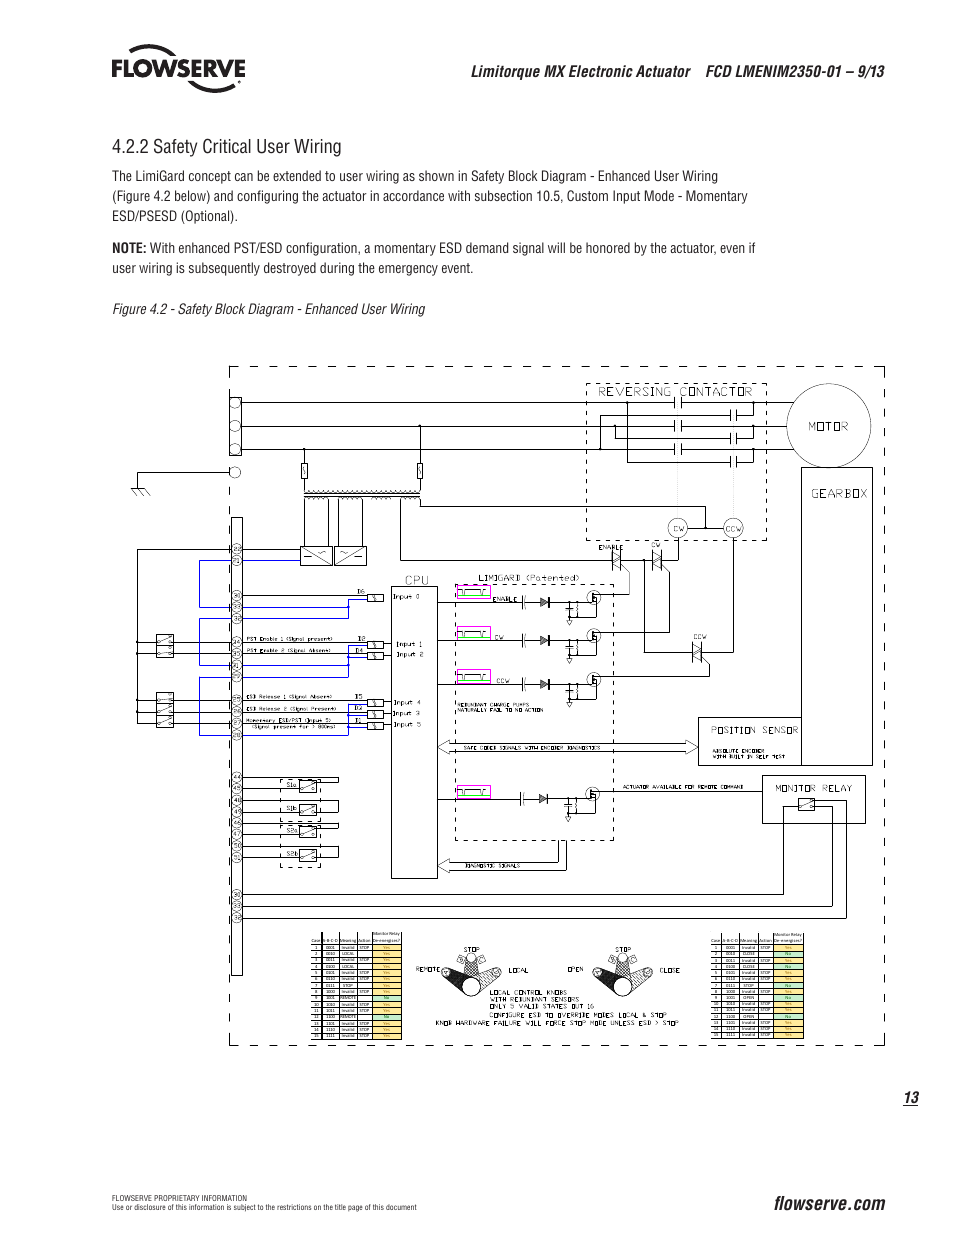 2 safety critical user wiring   Flowserve MX Electronic Actuator SIL Safety  IOM User Manual   Page 13 / 44Manuals Directory